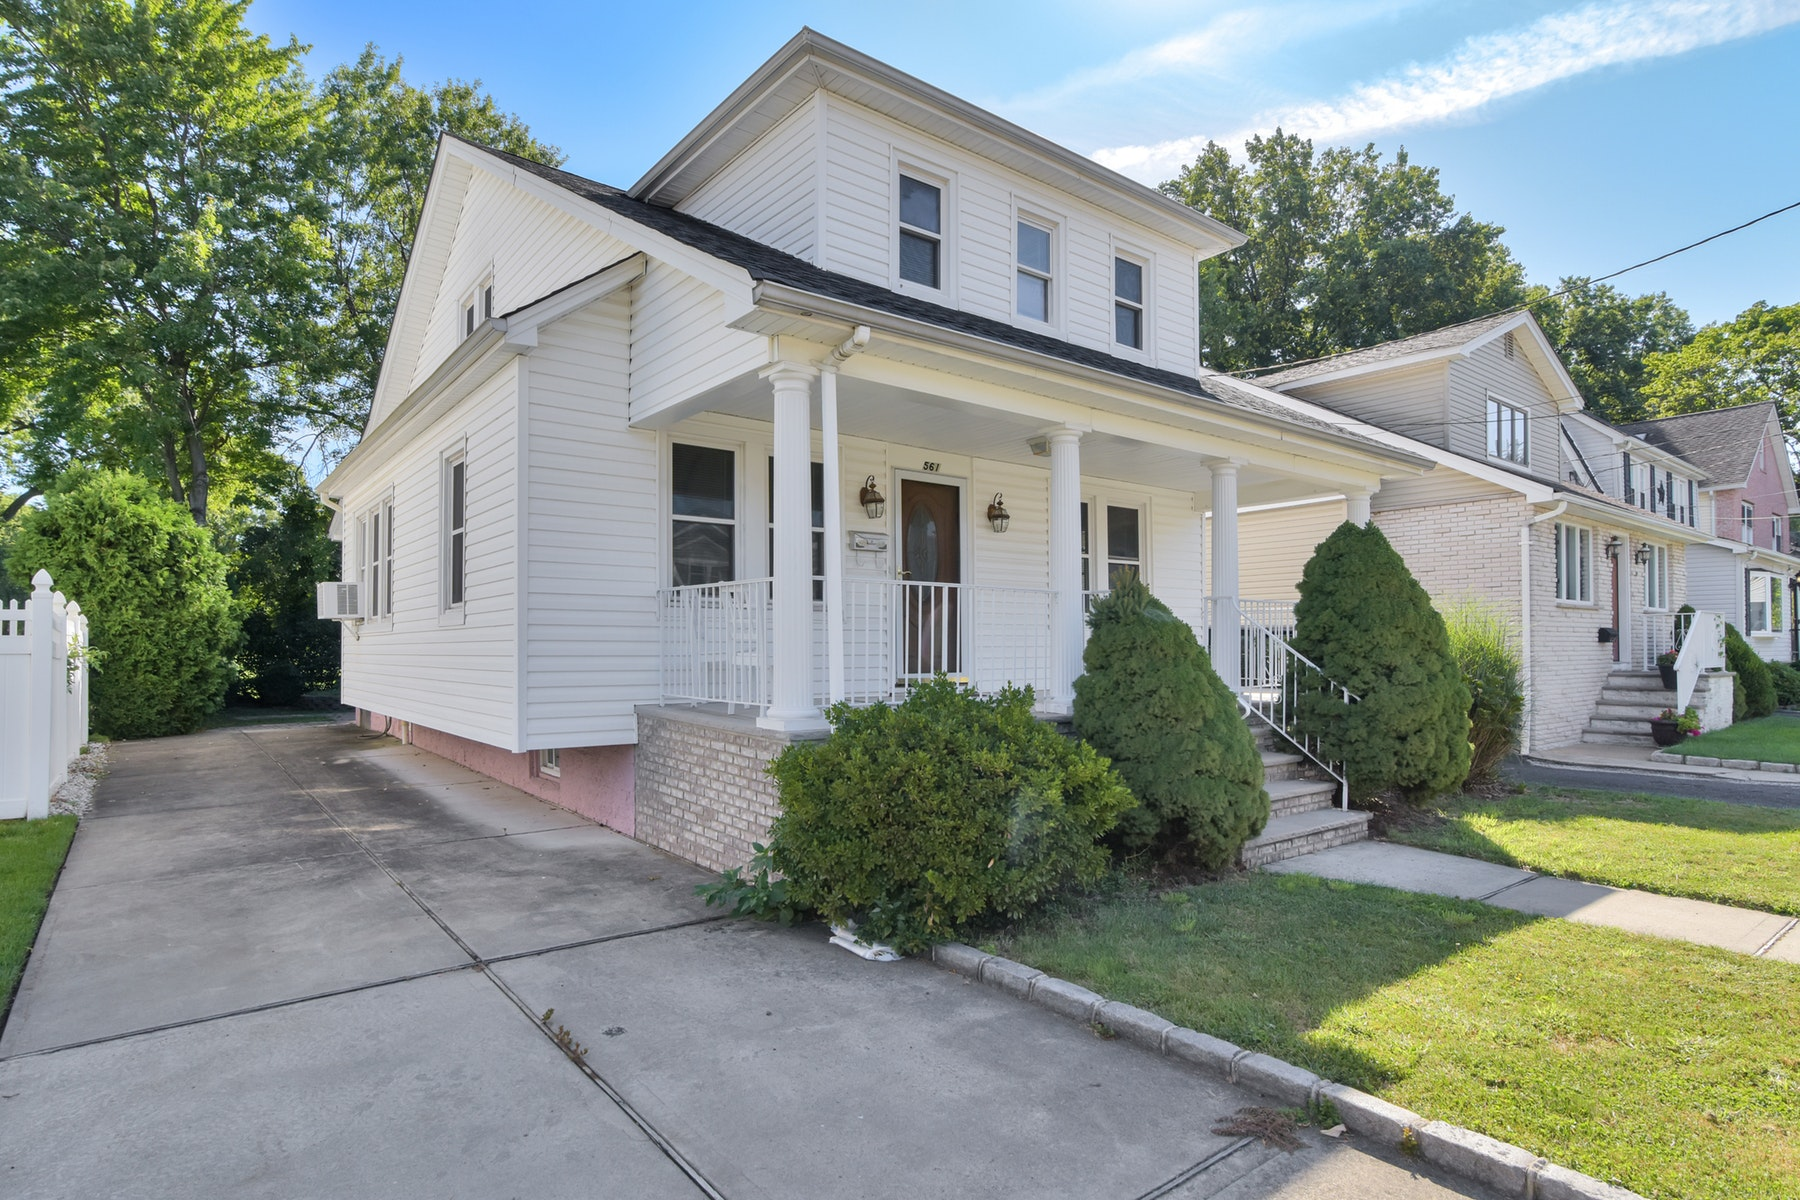 Single Family Homes for Sale at Charming Home Overlooking Golf Course 561 Golf Terrace Union, New Jersey 07083 United States